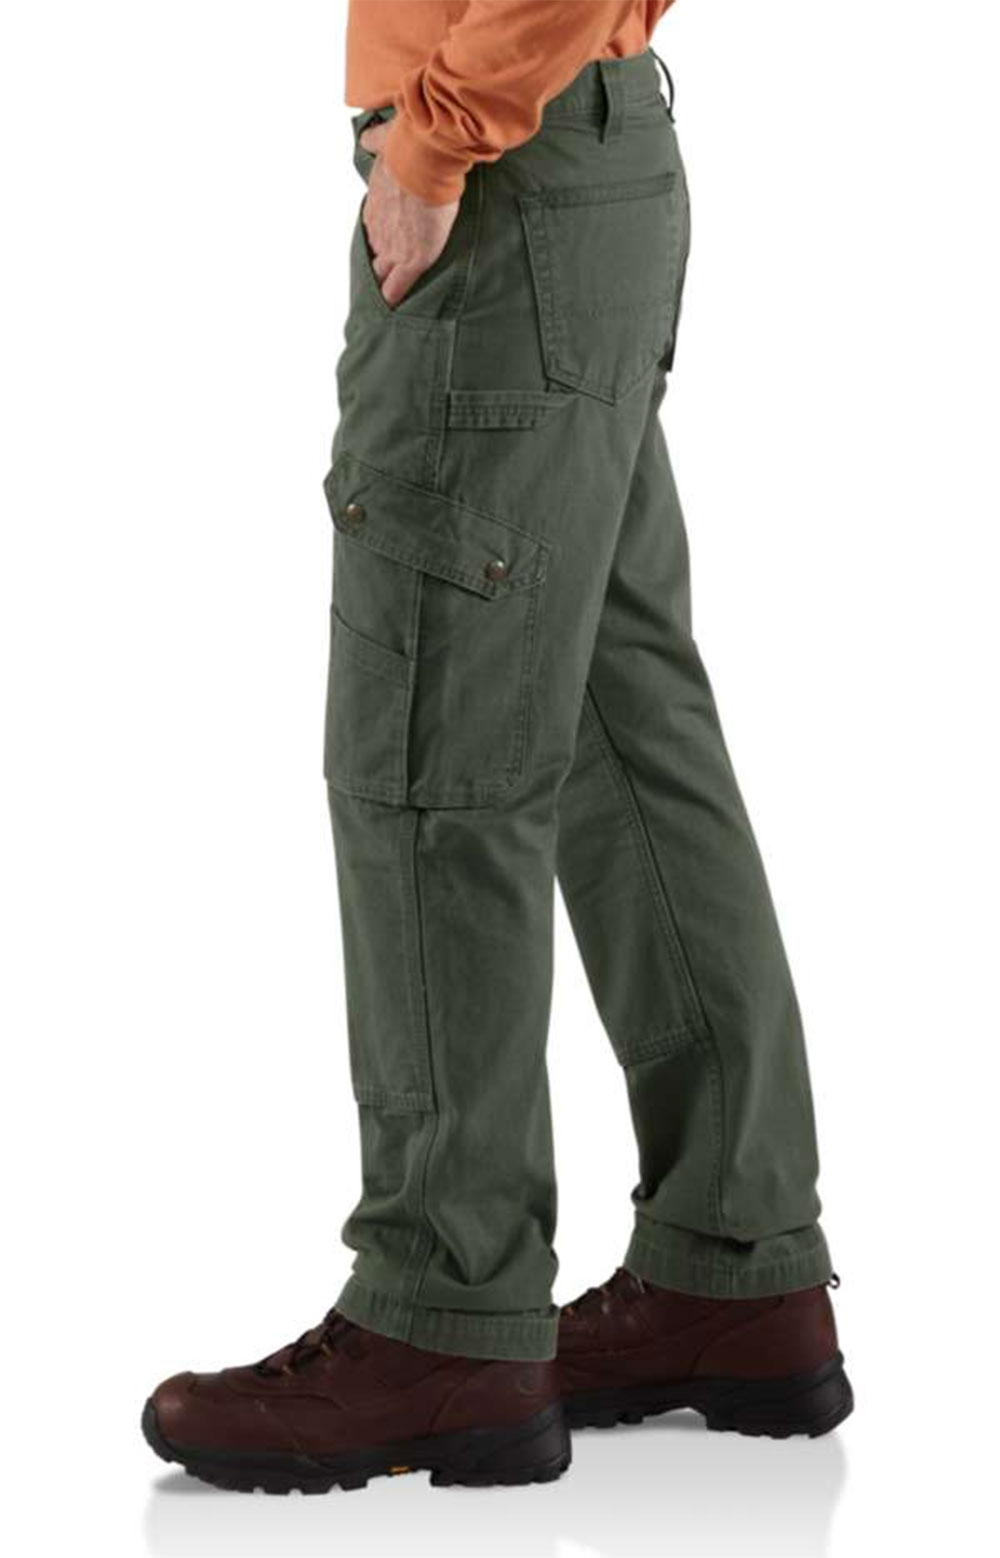 (B342) Cotton Ripstop Relaxed Fit Double Front Cargo Work Pant - Moss  4